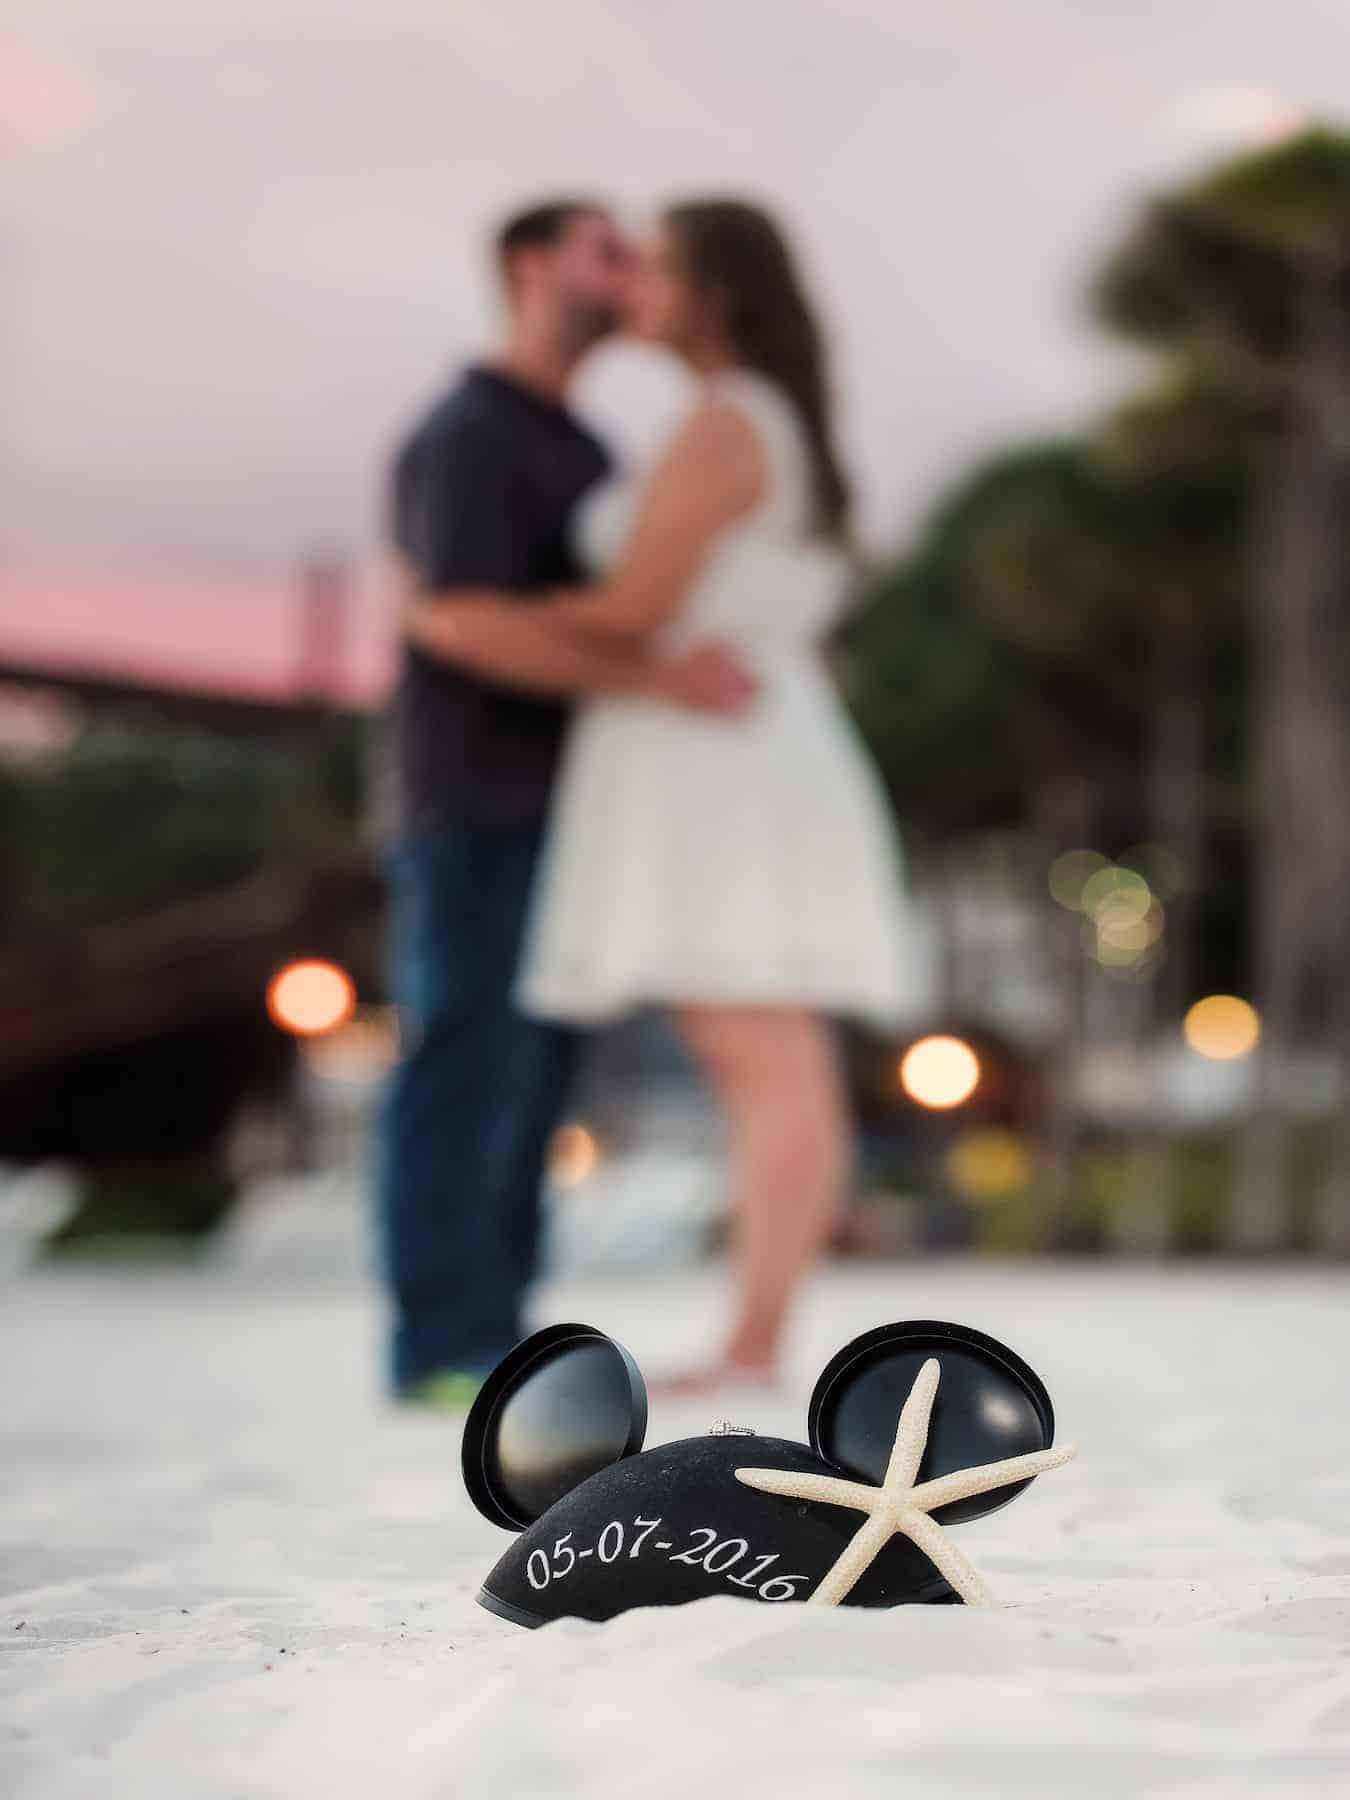 Disney Boardwalk Engagement Experience   Kaitlyn and Patrick